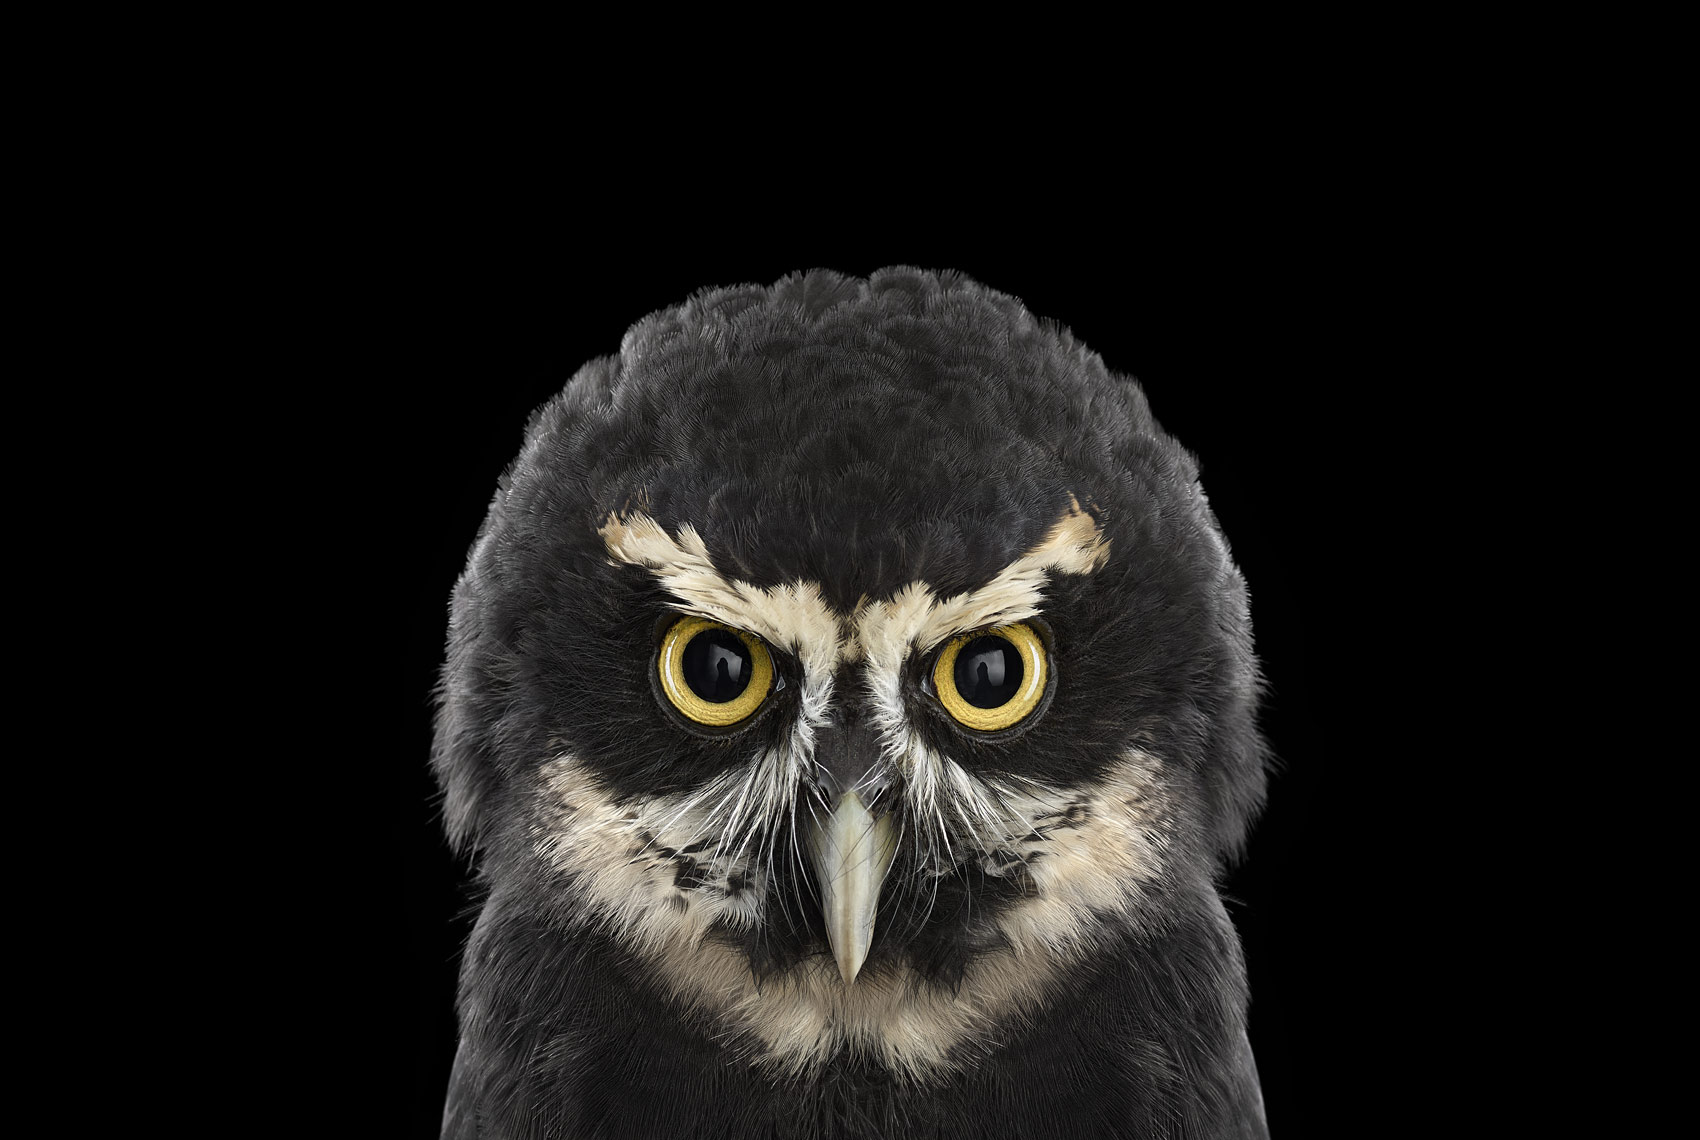 Spectacled owl frontal portrait by fine art animal photographer Brad Wilson